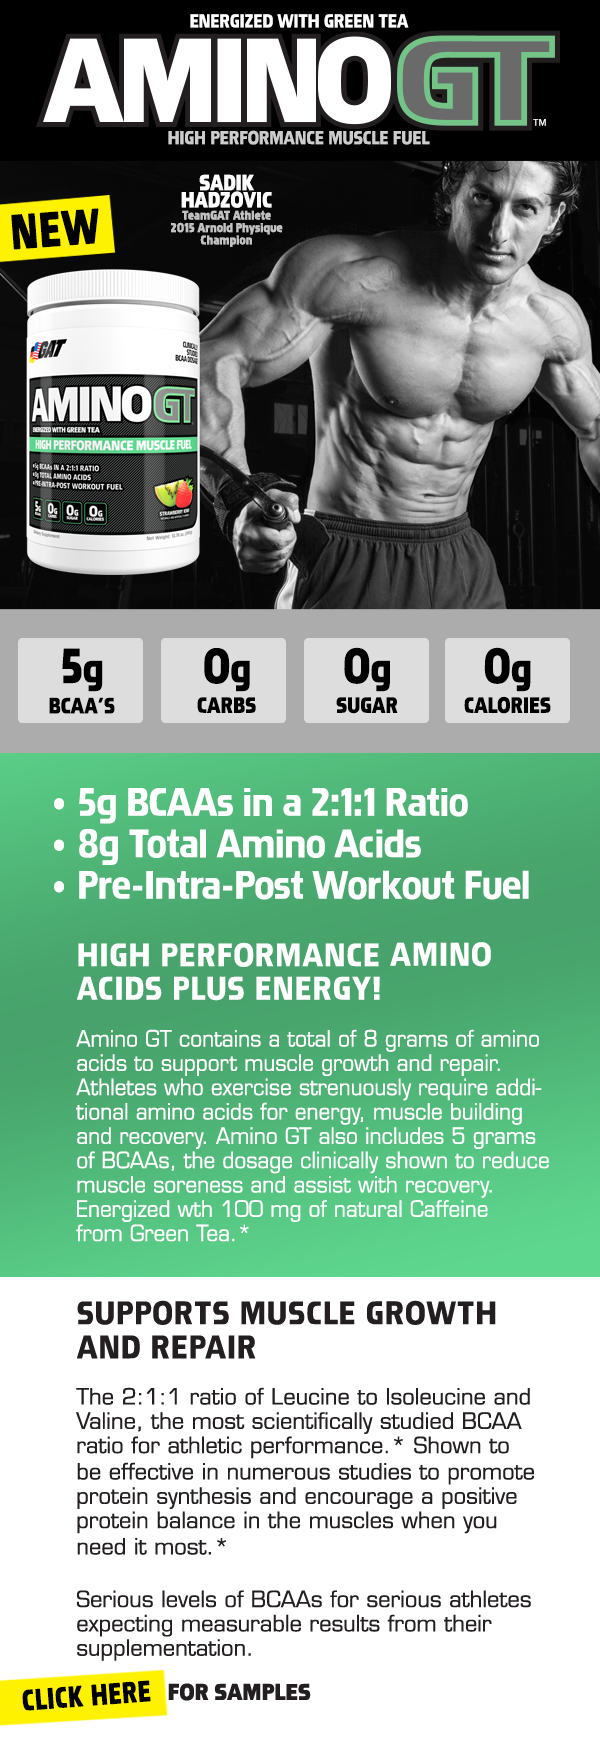 muscle growth with amino acids top products studies